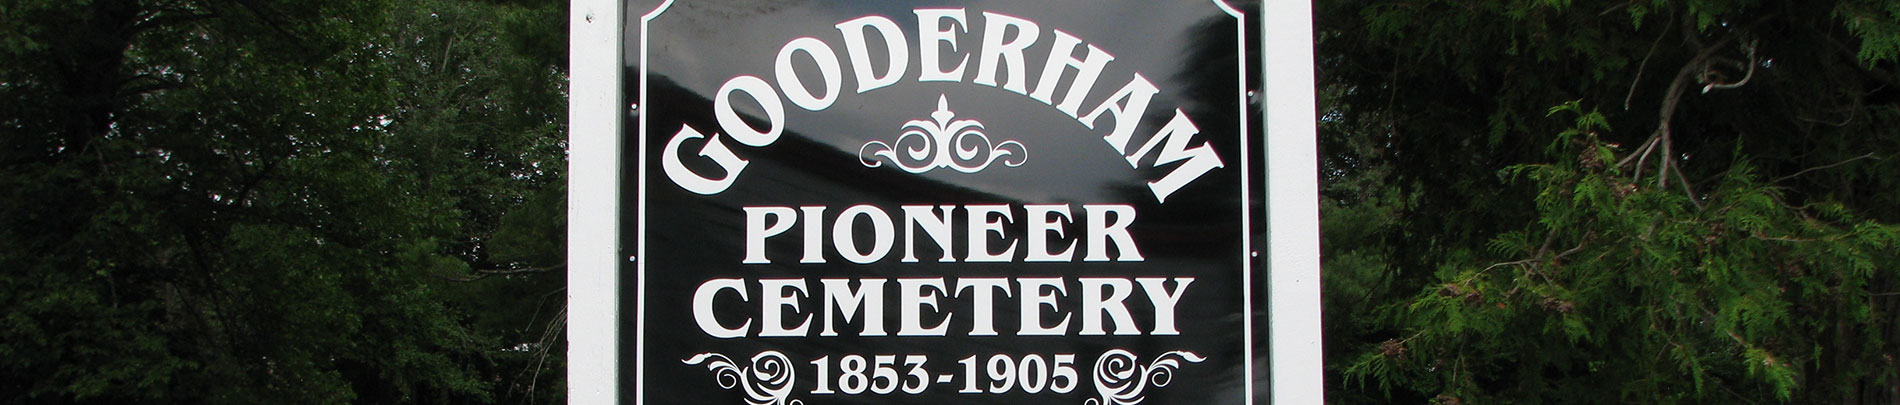 A sign that reads Gooderham Pioneer Cemetery.